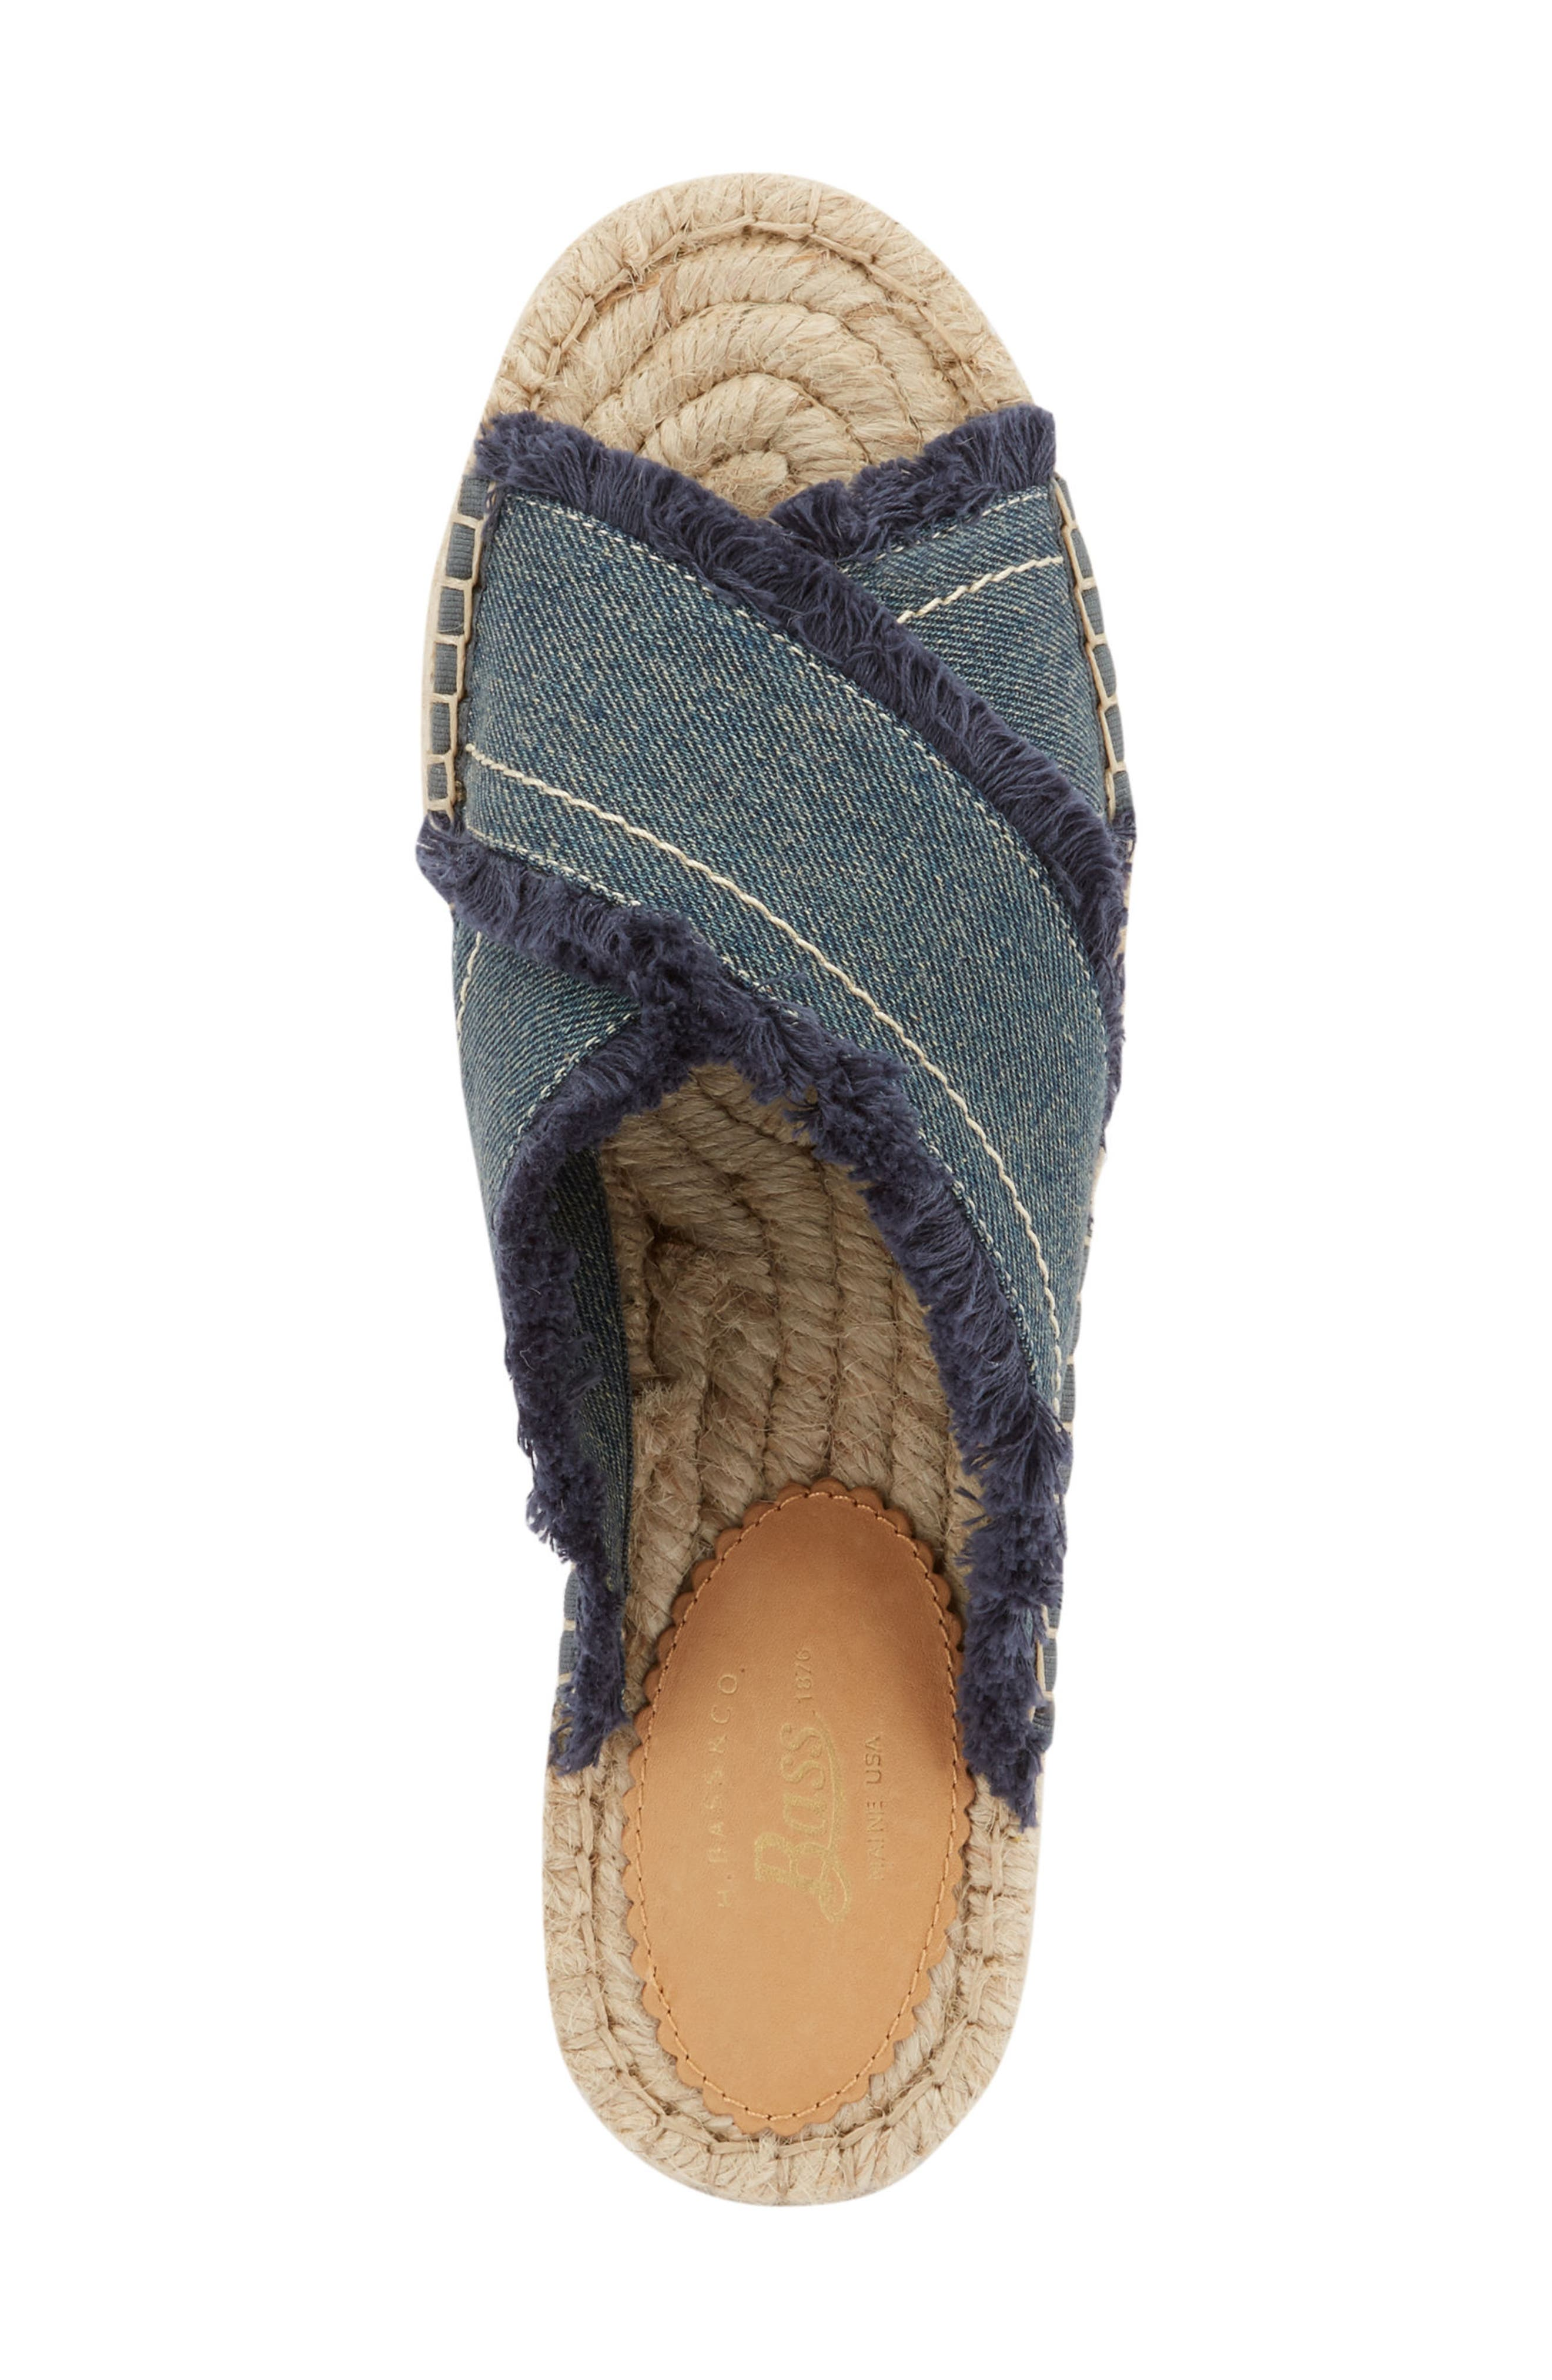 Anabelle Espadrille Sandal,                             Alternate thumbnail 5, color,                             DARK BLUE DENIM FABRIC